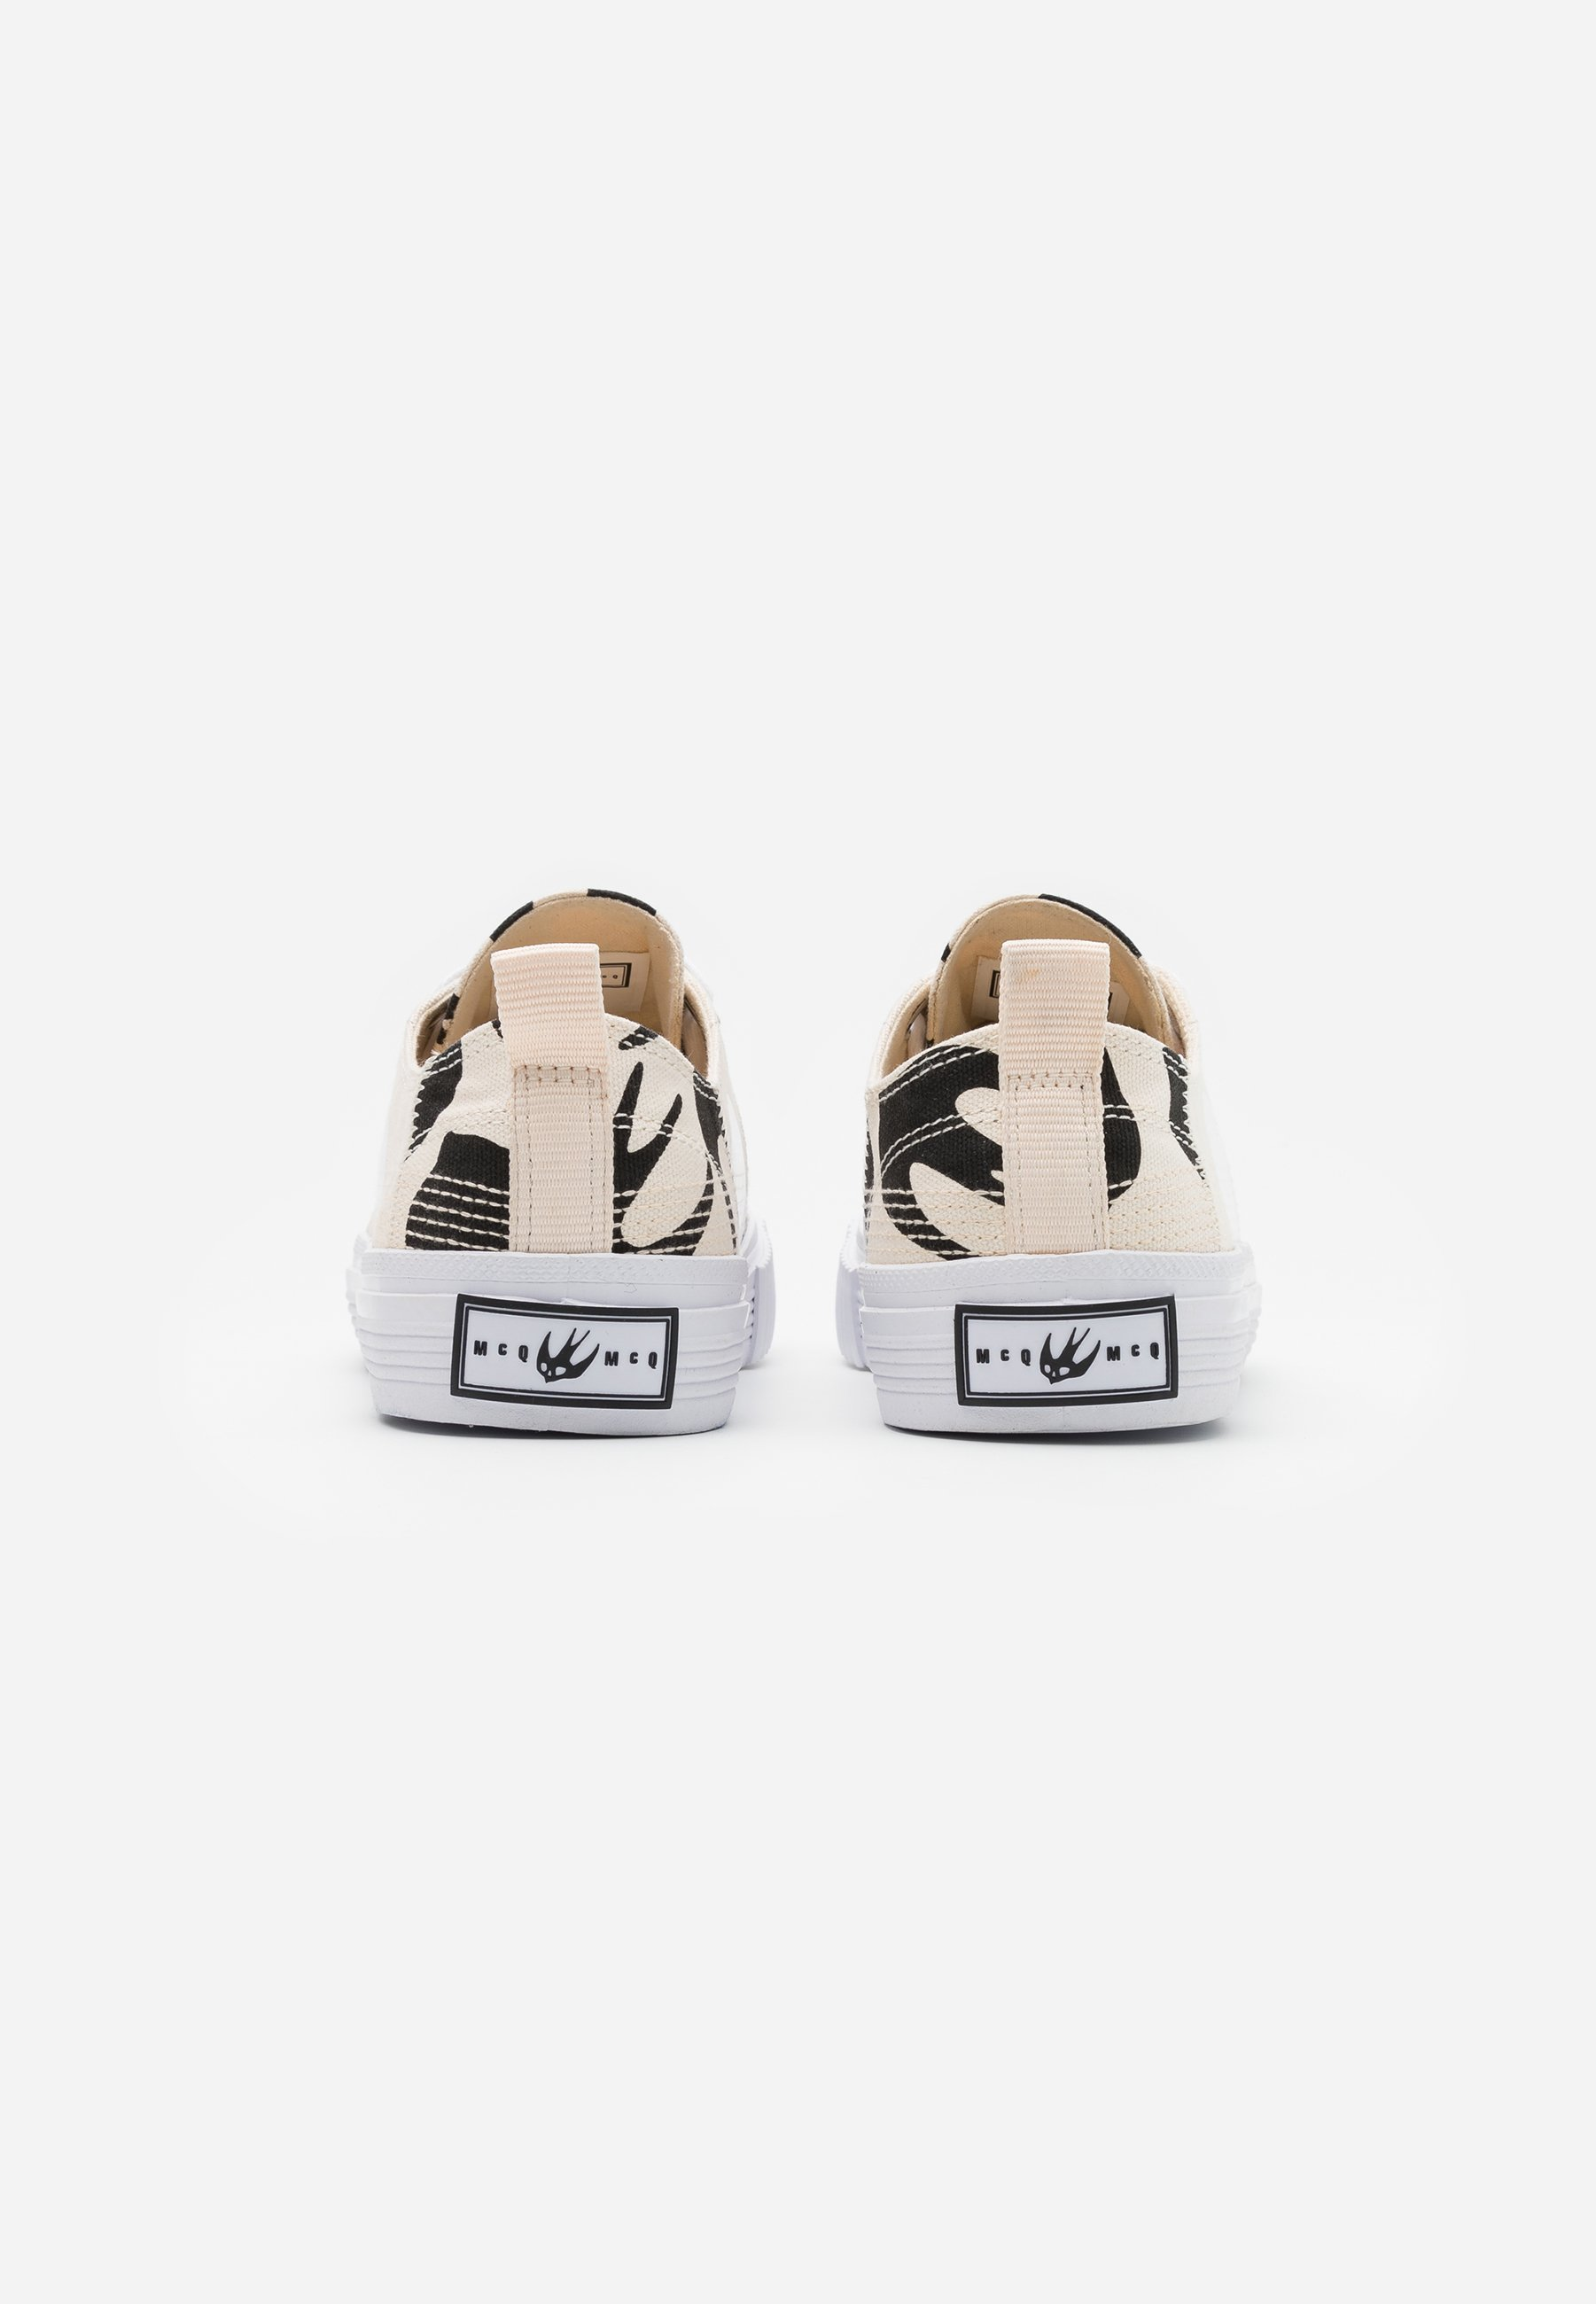 McQ Alexander McQueen SWALLOW CUT UP - Sneaker low - oyster/black/offwhite - Herrenschuhe xuedk